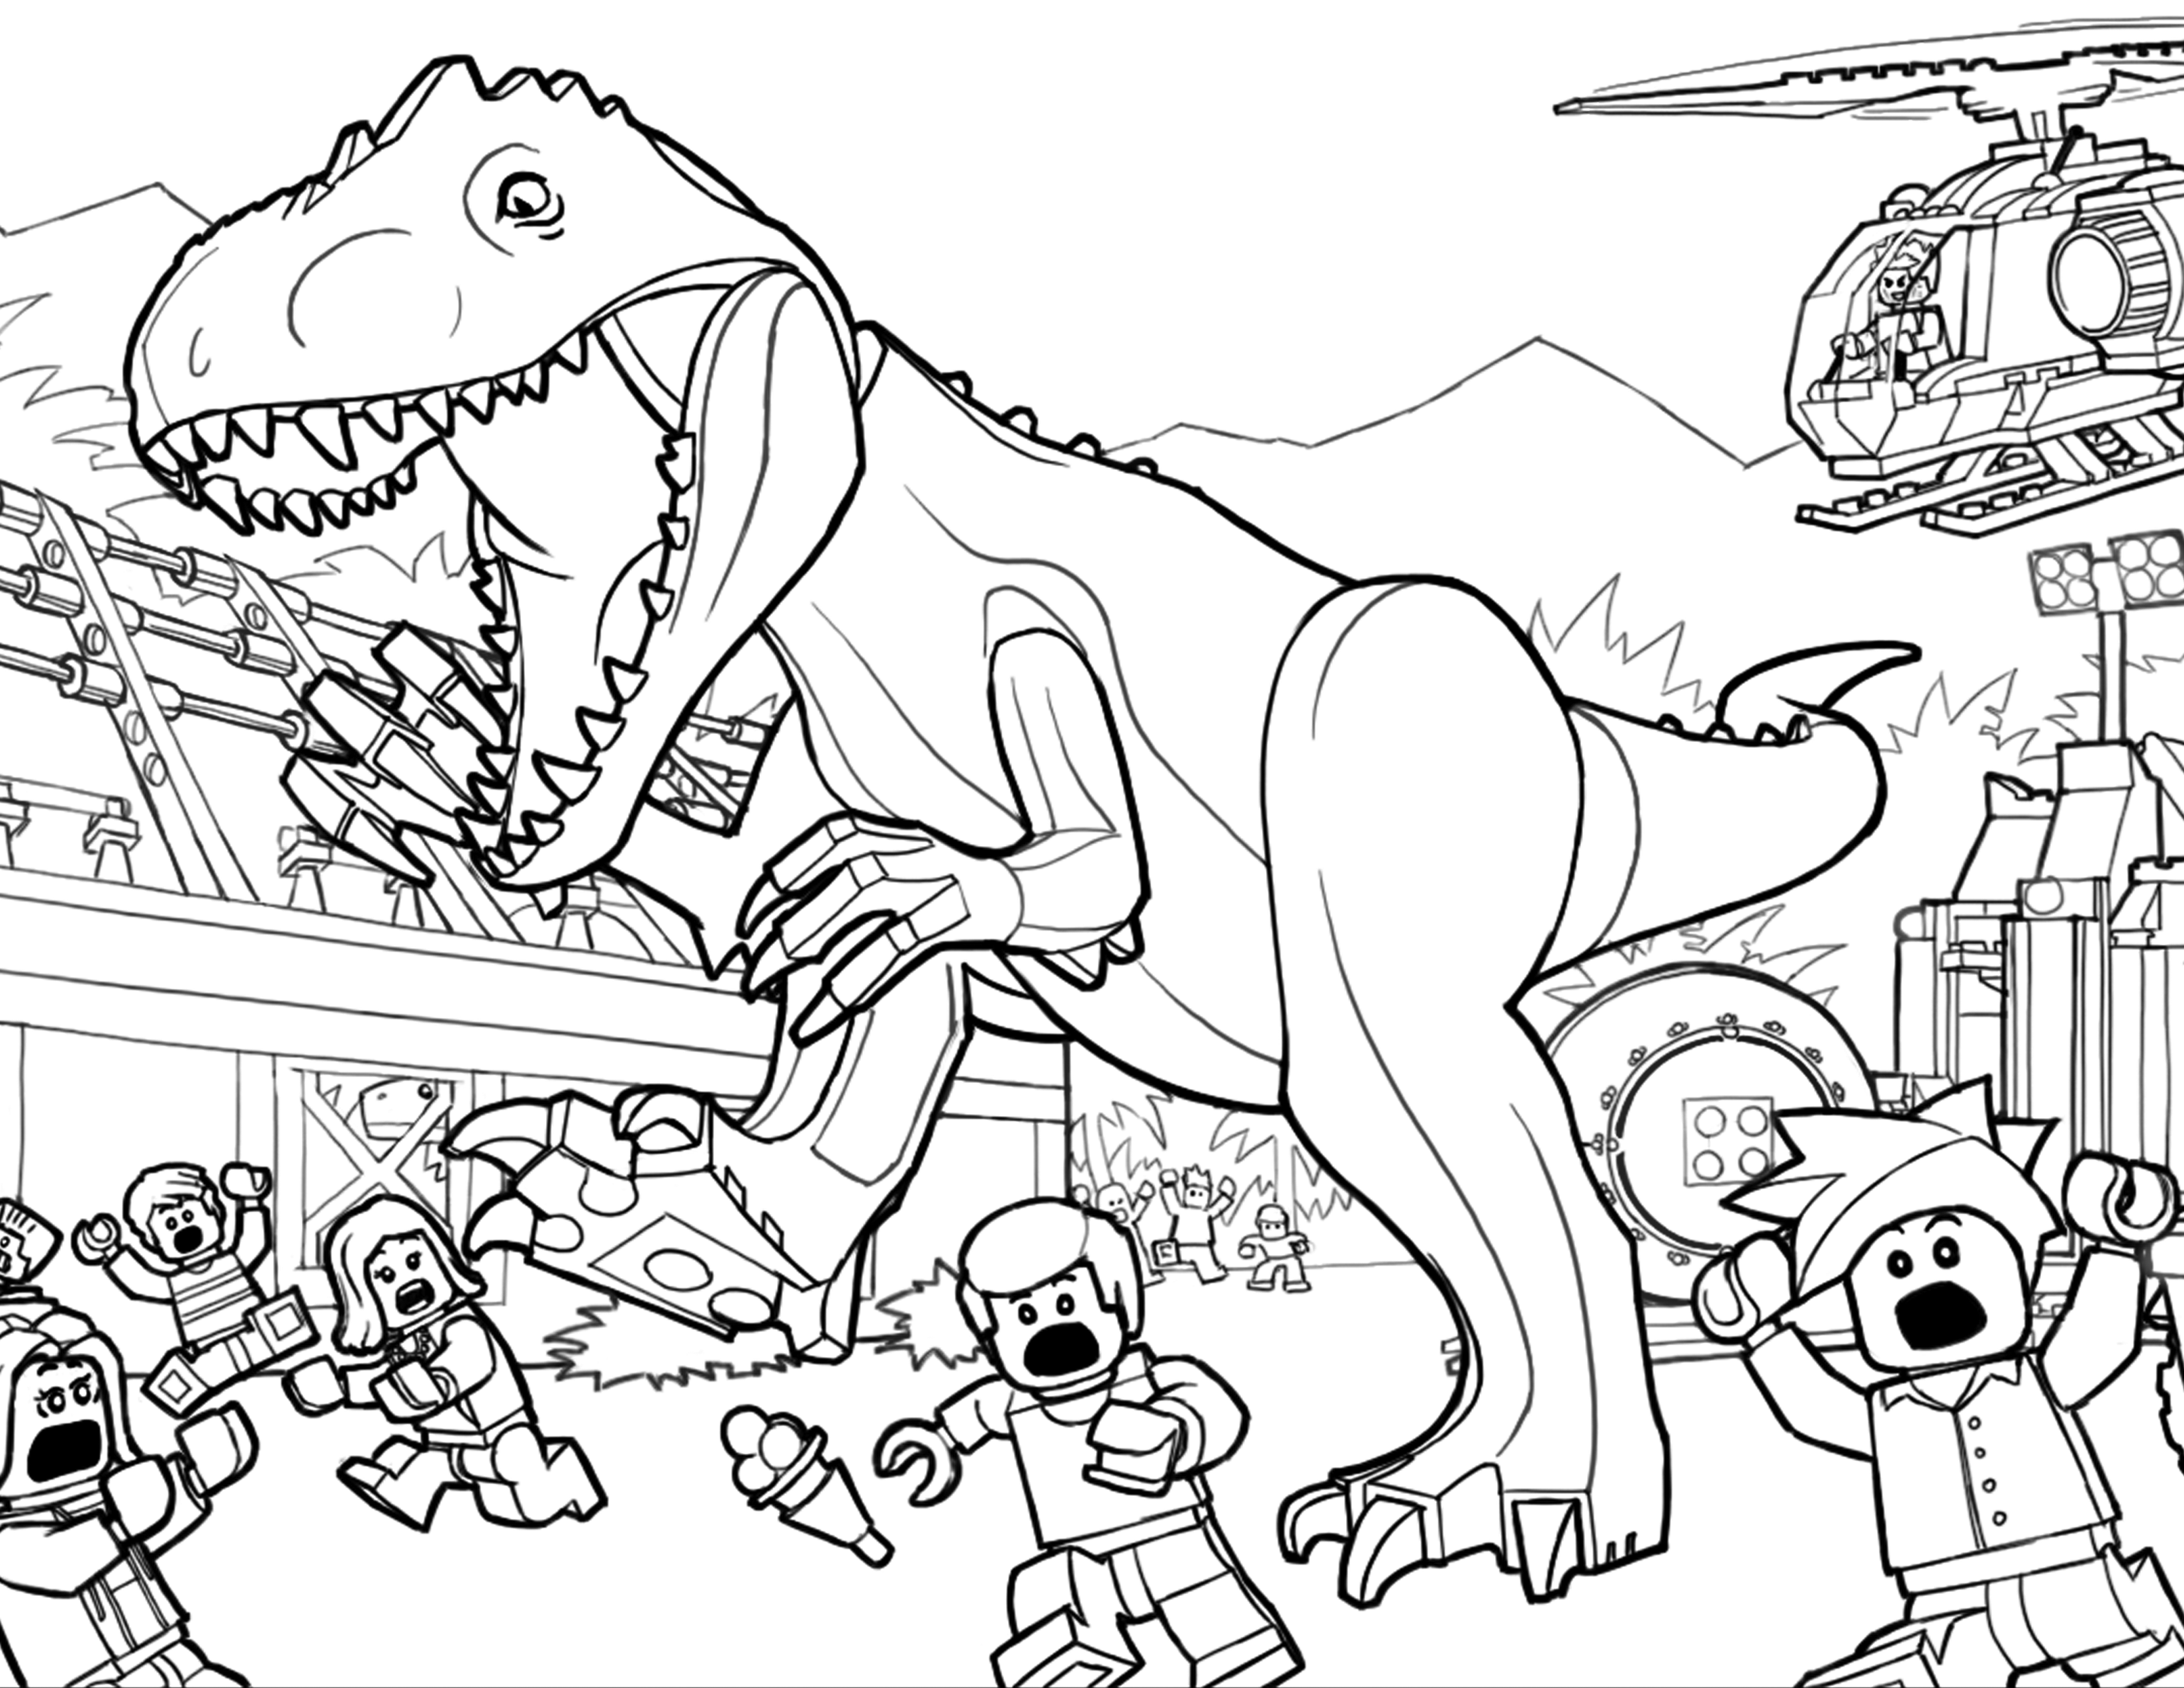 trex coloring pages trex coloring pages best coloring pages for kids trex coloring pages